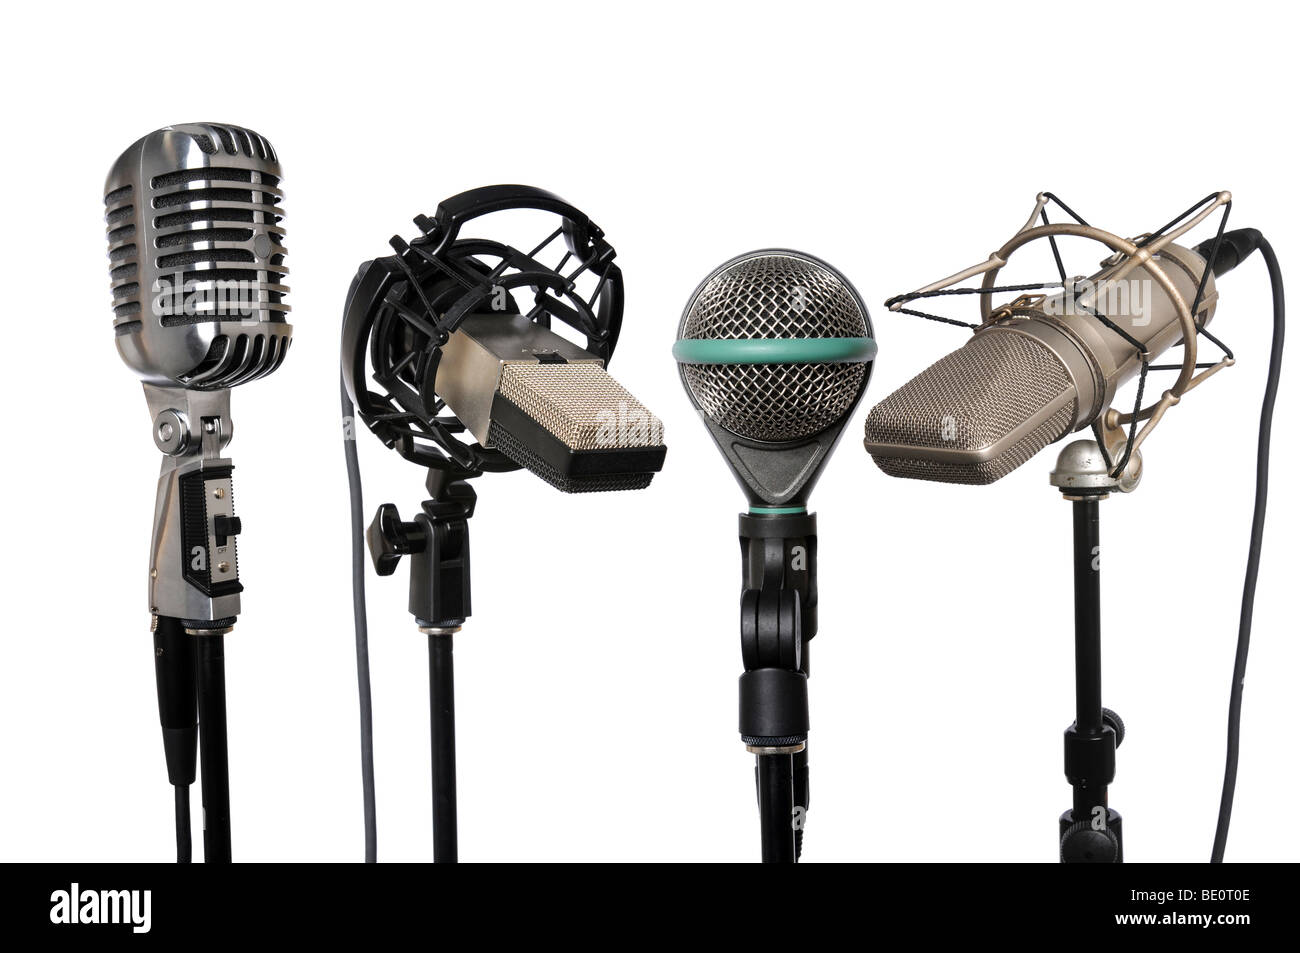 Microphones from vintage to modern aligned together - Stock Image